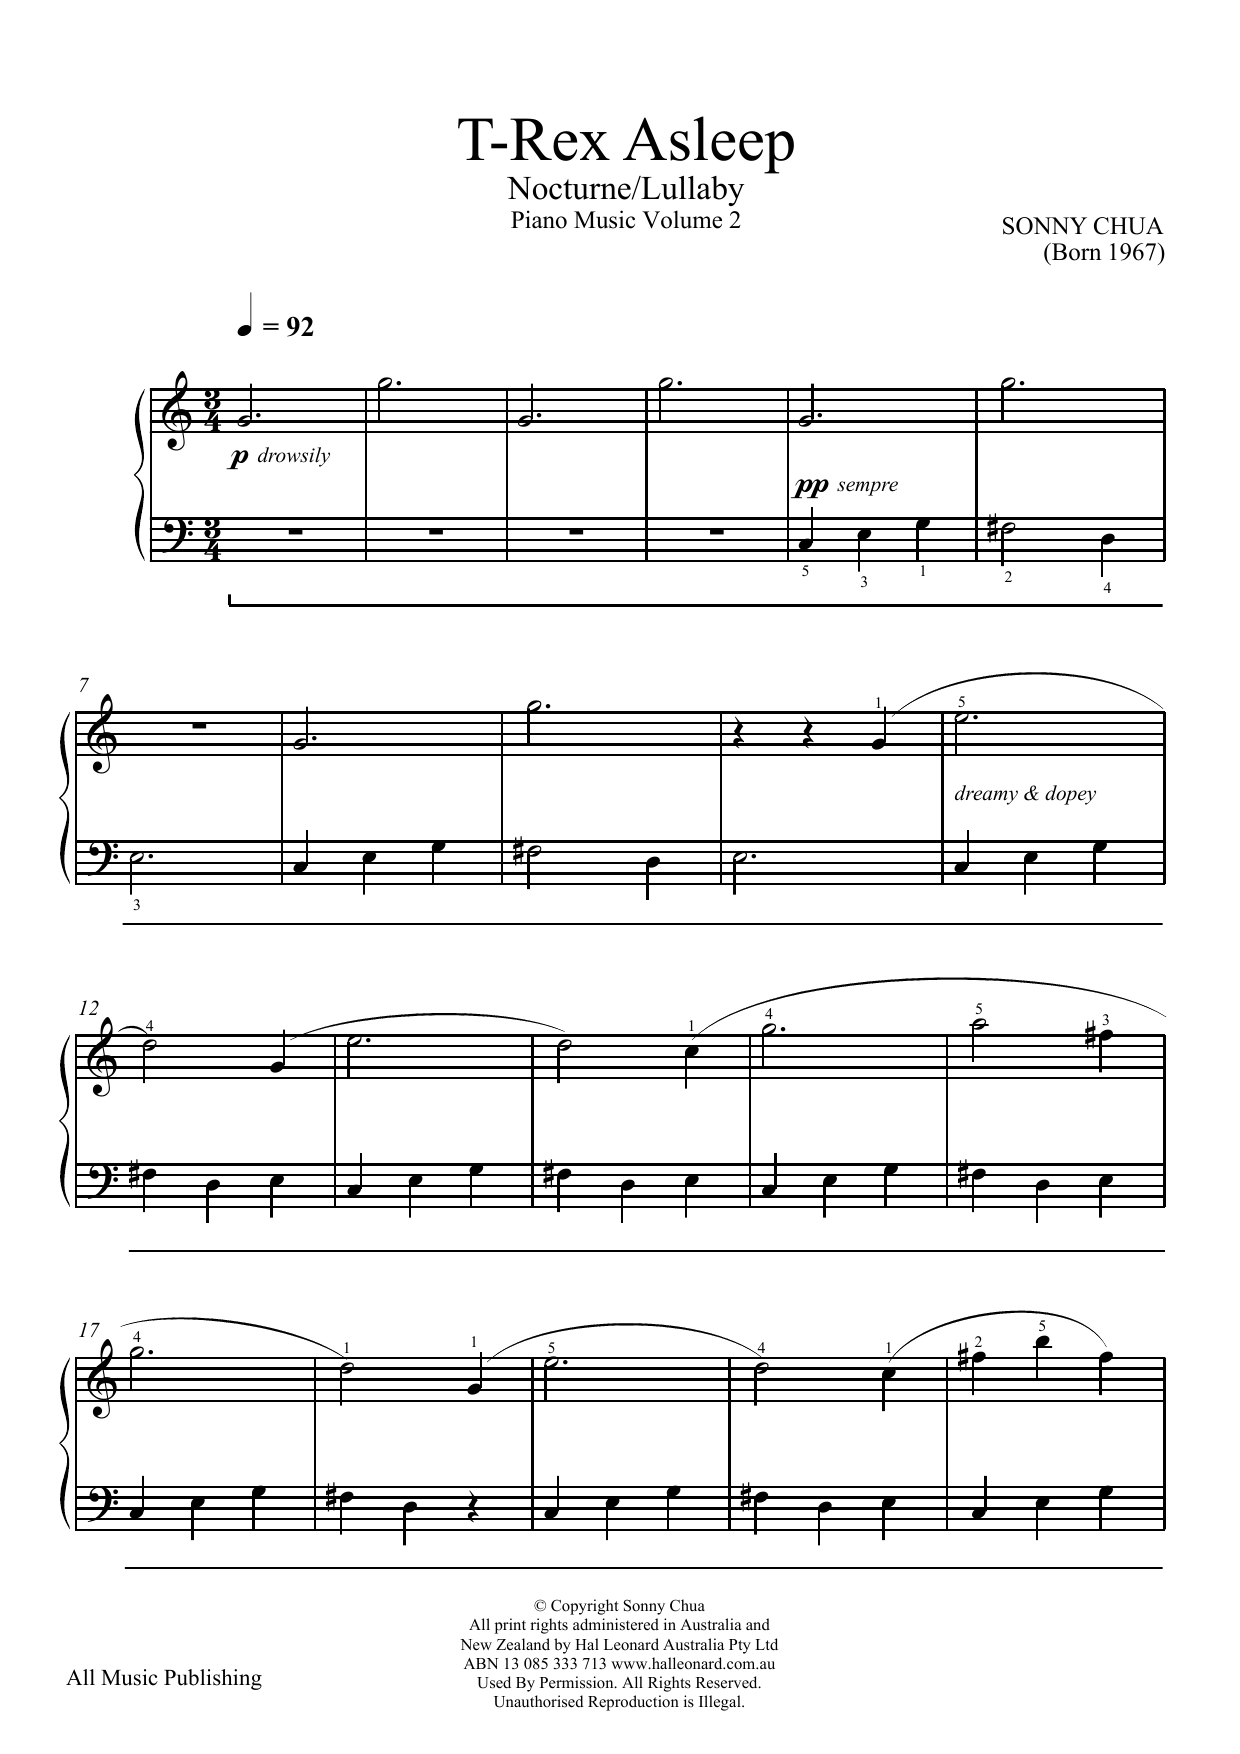 Sonny Chua T-Rex Asleep (From Piano Music Vol 2) sheet music notes and chords. Download Printable PDF.